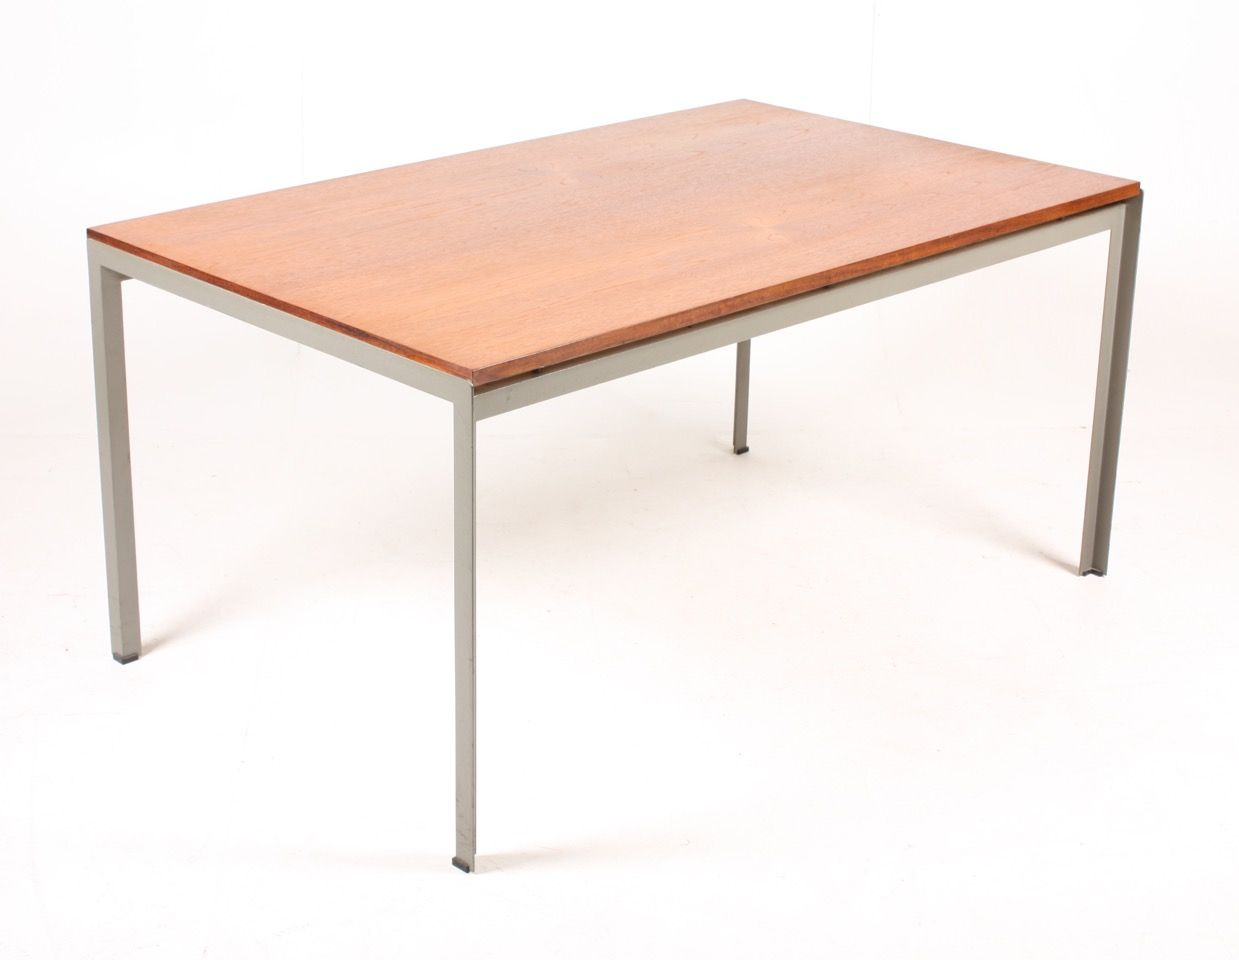 Work Table with Teak Top by Poul Kjrholm for Rud. Rasmussen